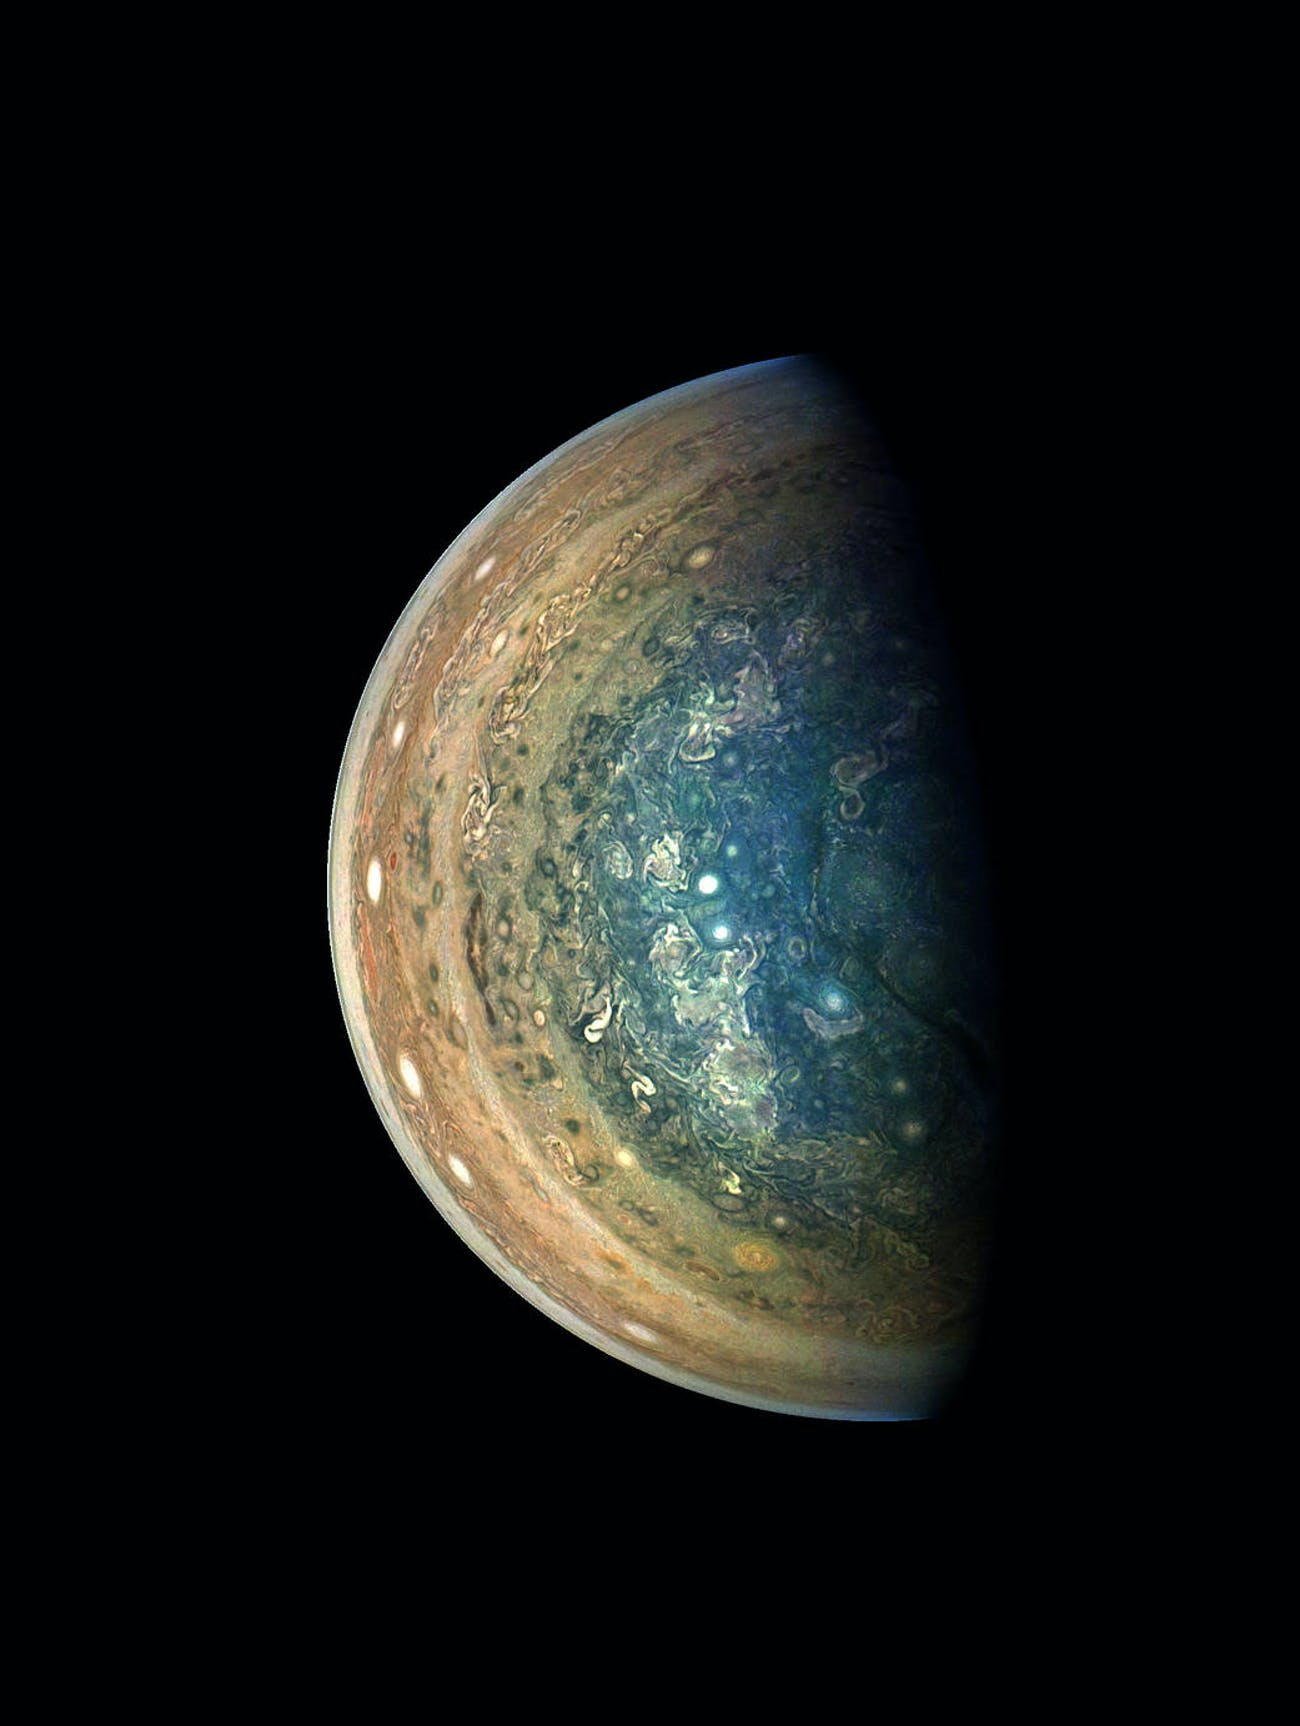 Jupiter's swirling south polar region was captured by NASA's Juno spacecraft